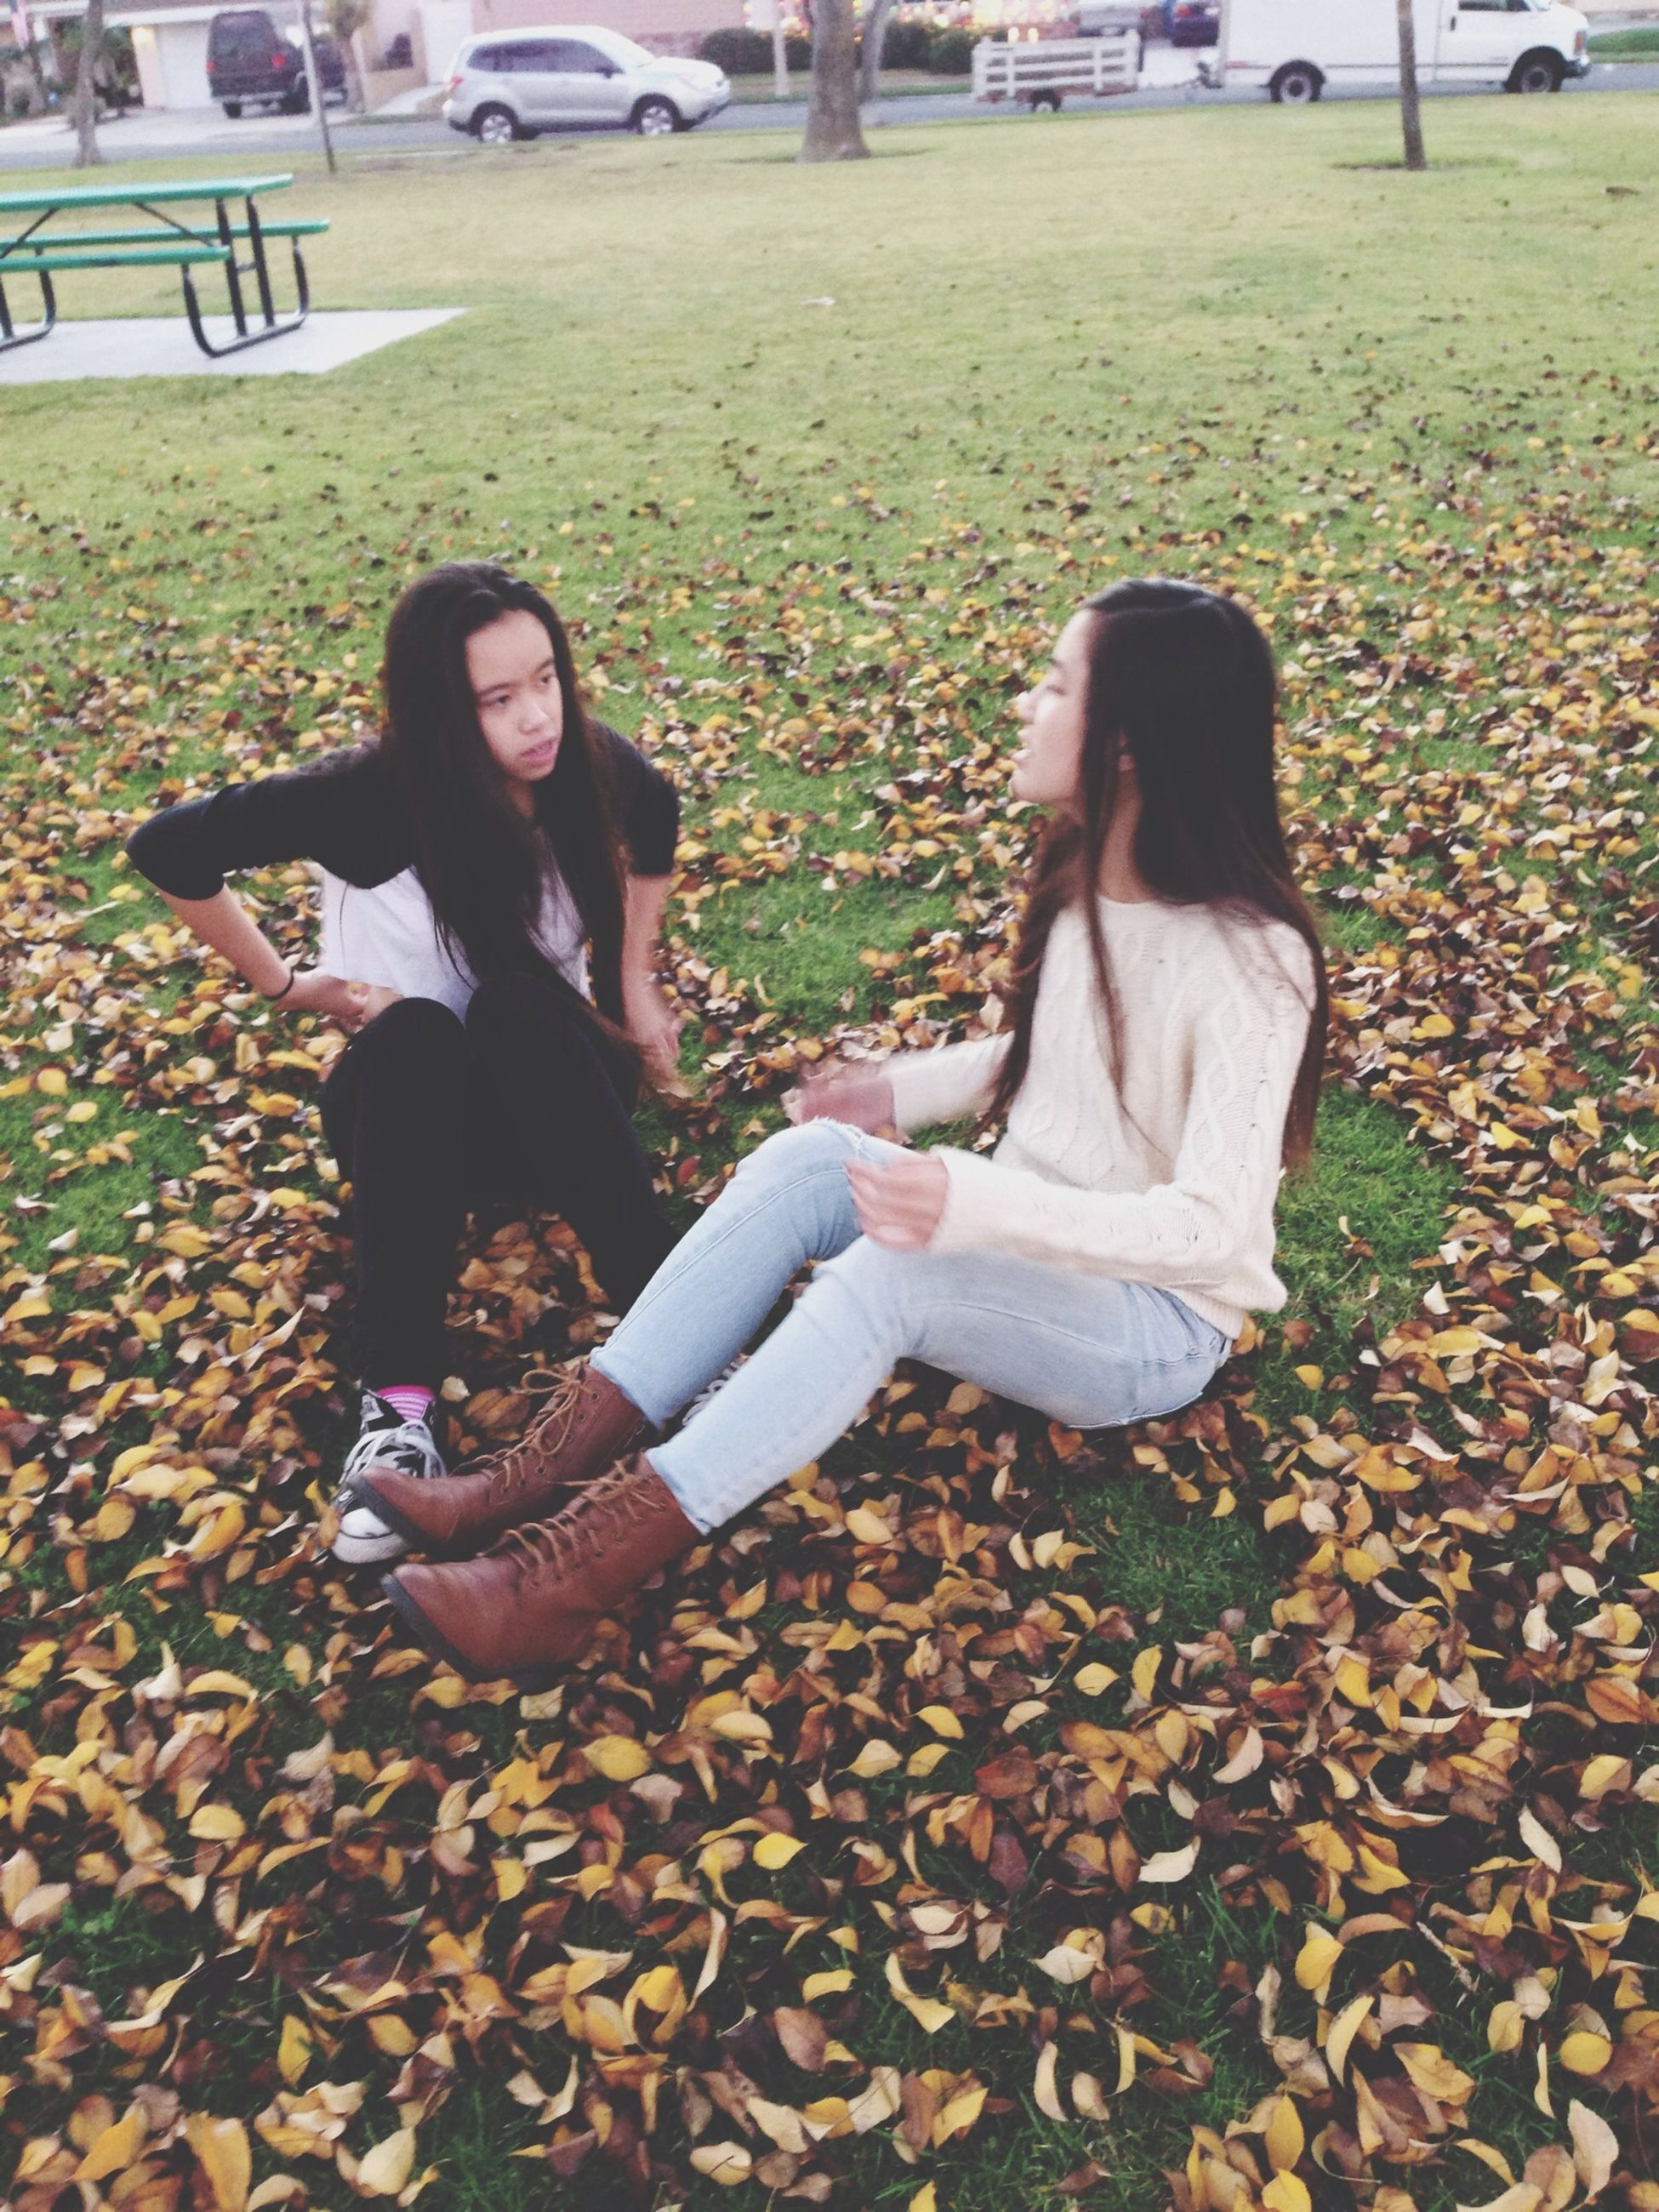 lifestyles, casual clothing, person, leisure activity, full length, childhood, young women, park - man made space, sitting, young adult, elementary age, girls, grass, three quarter length, smiling, field, standing, day